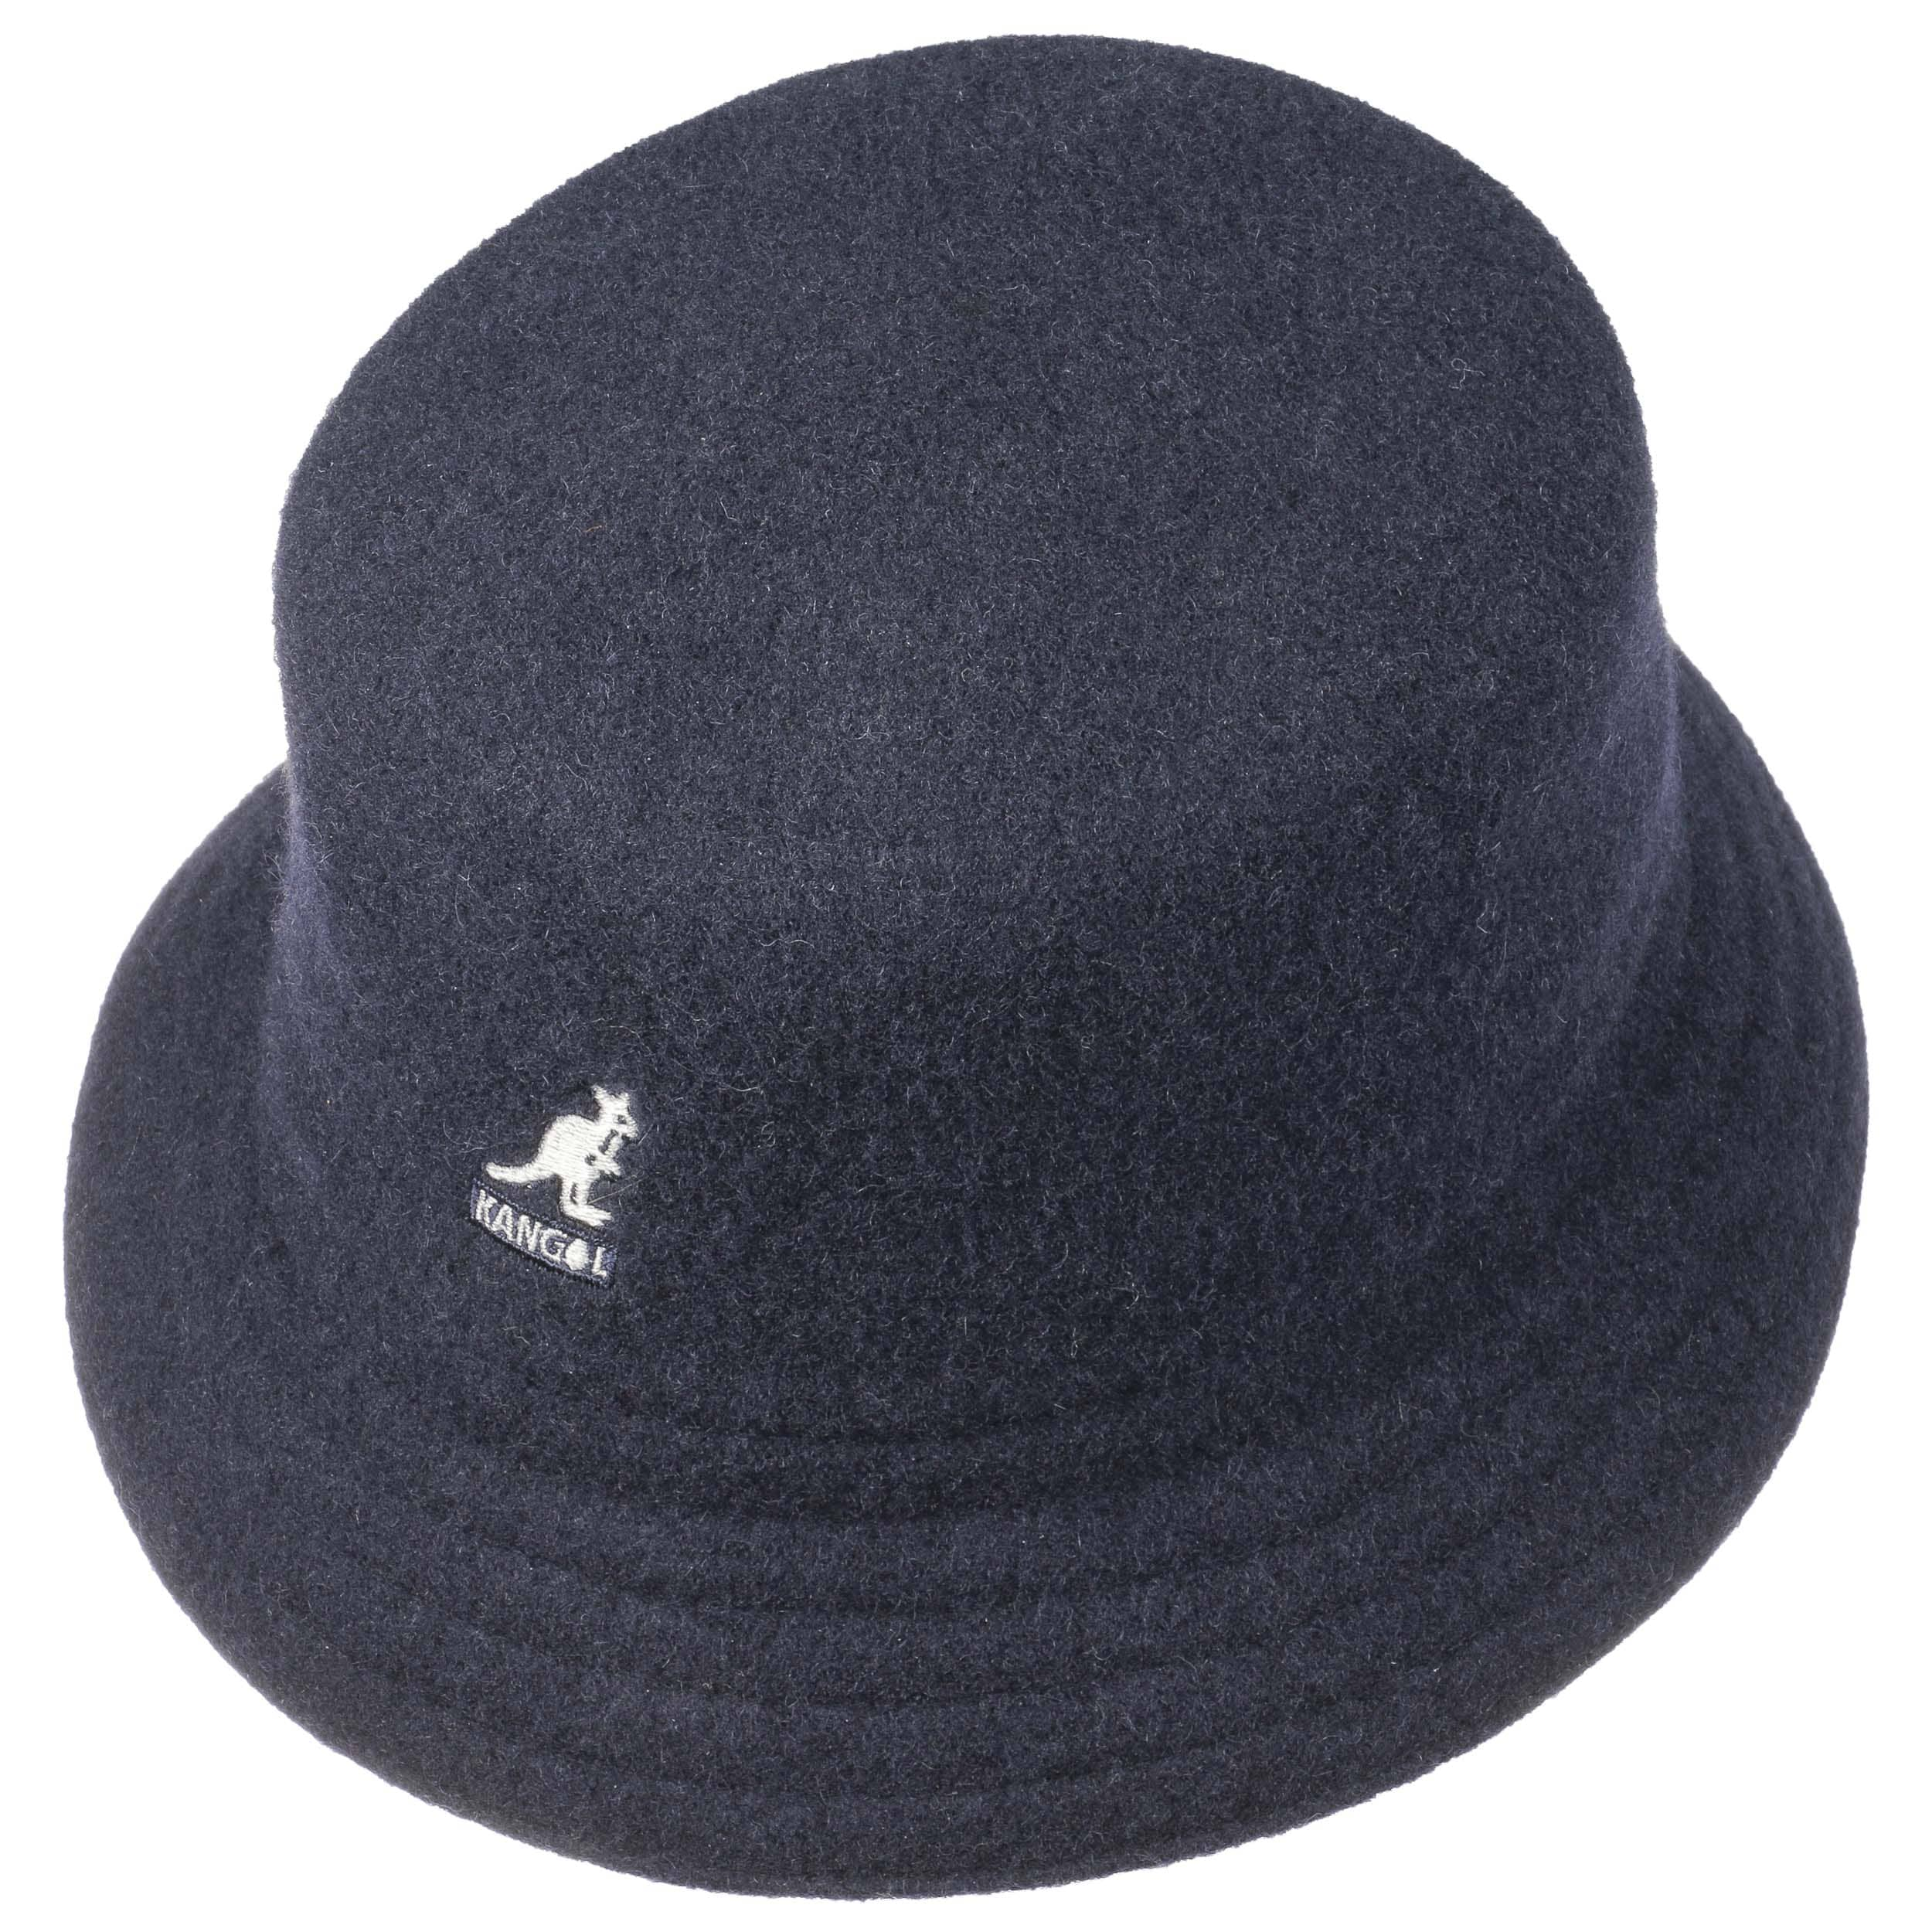 ... Cappello Wool Lahinch by Kangol - blu scuro 1 ... 4c4e3342297f